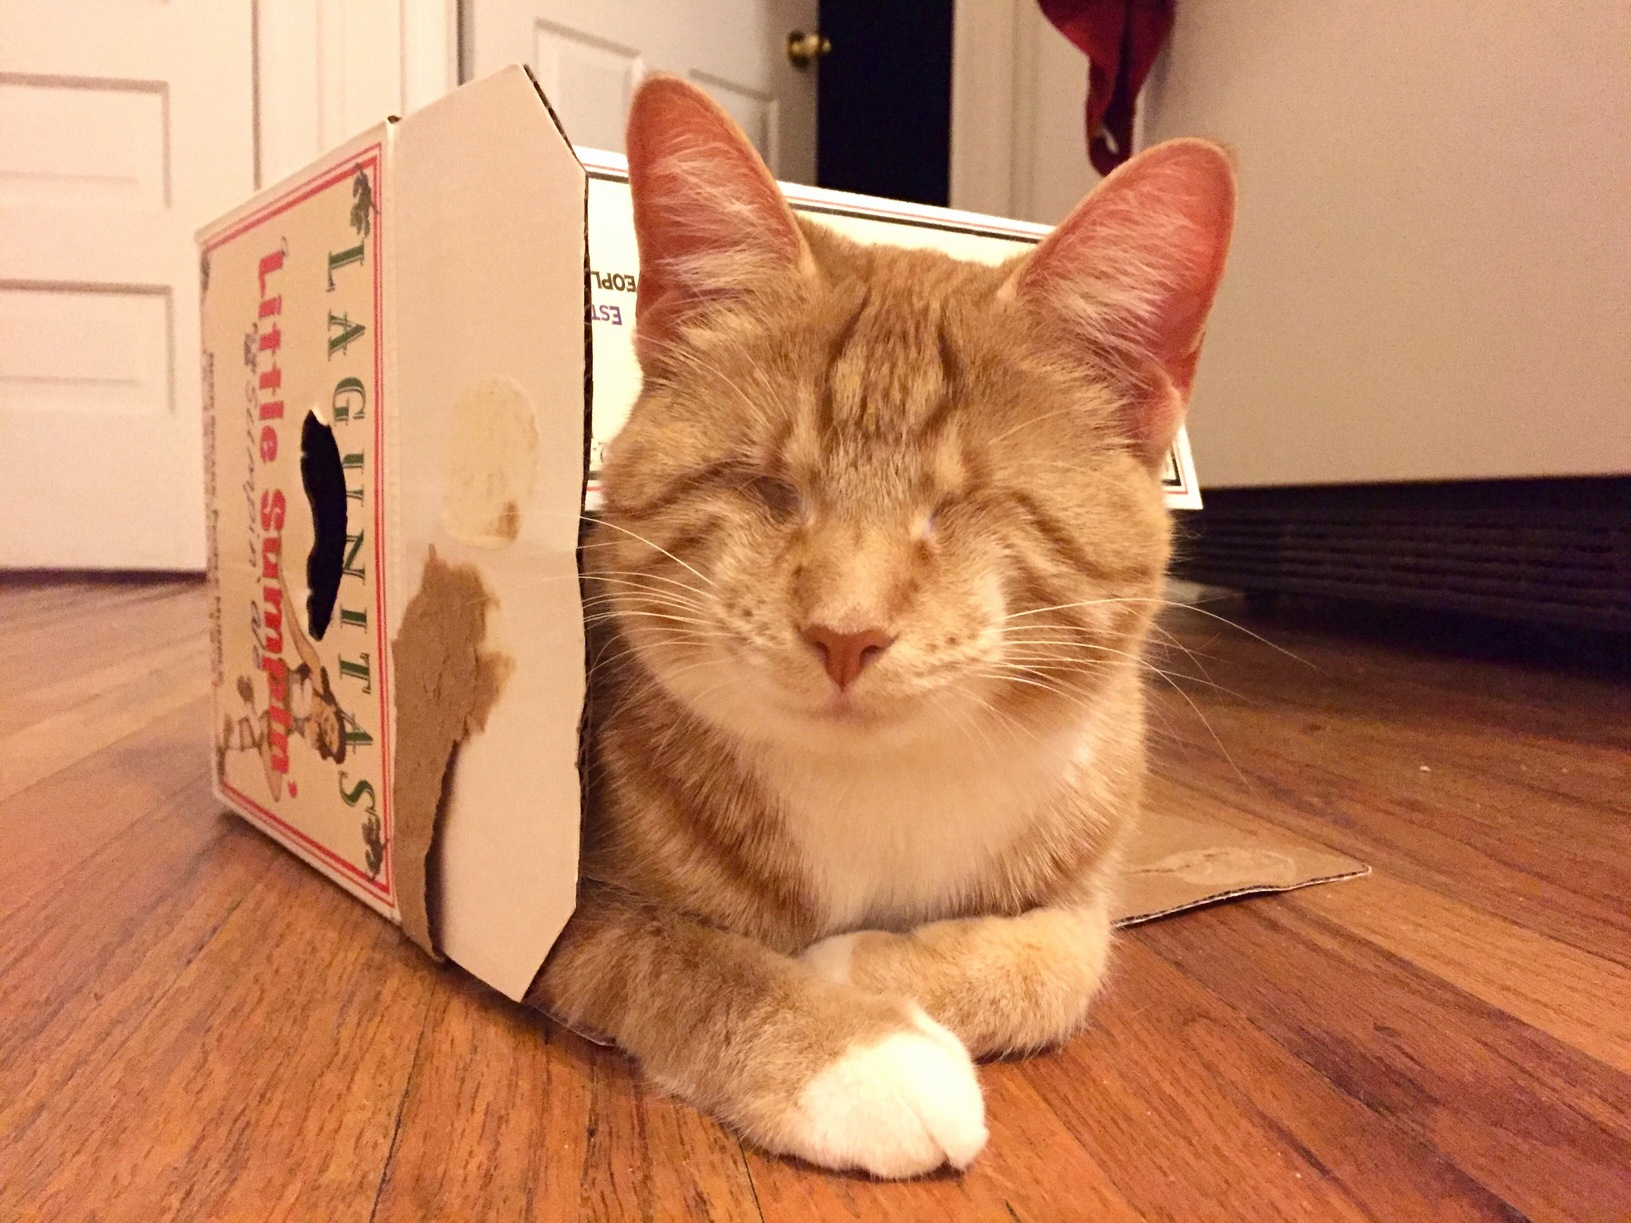 Daddy gets his beer i get his box